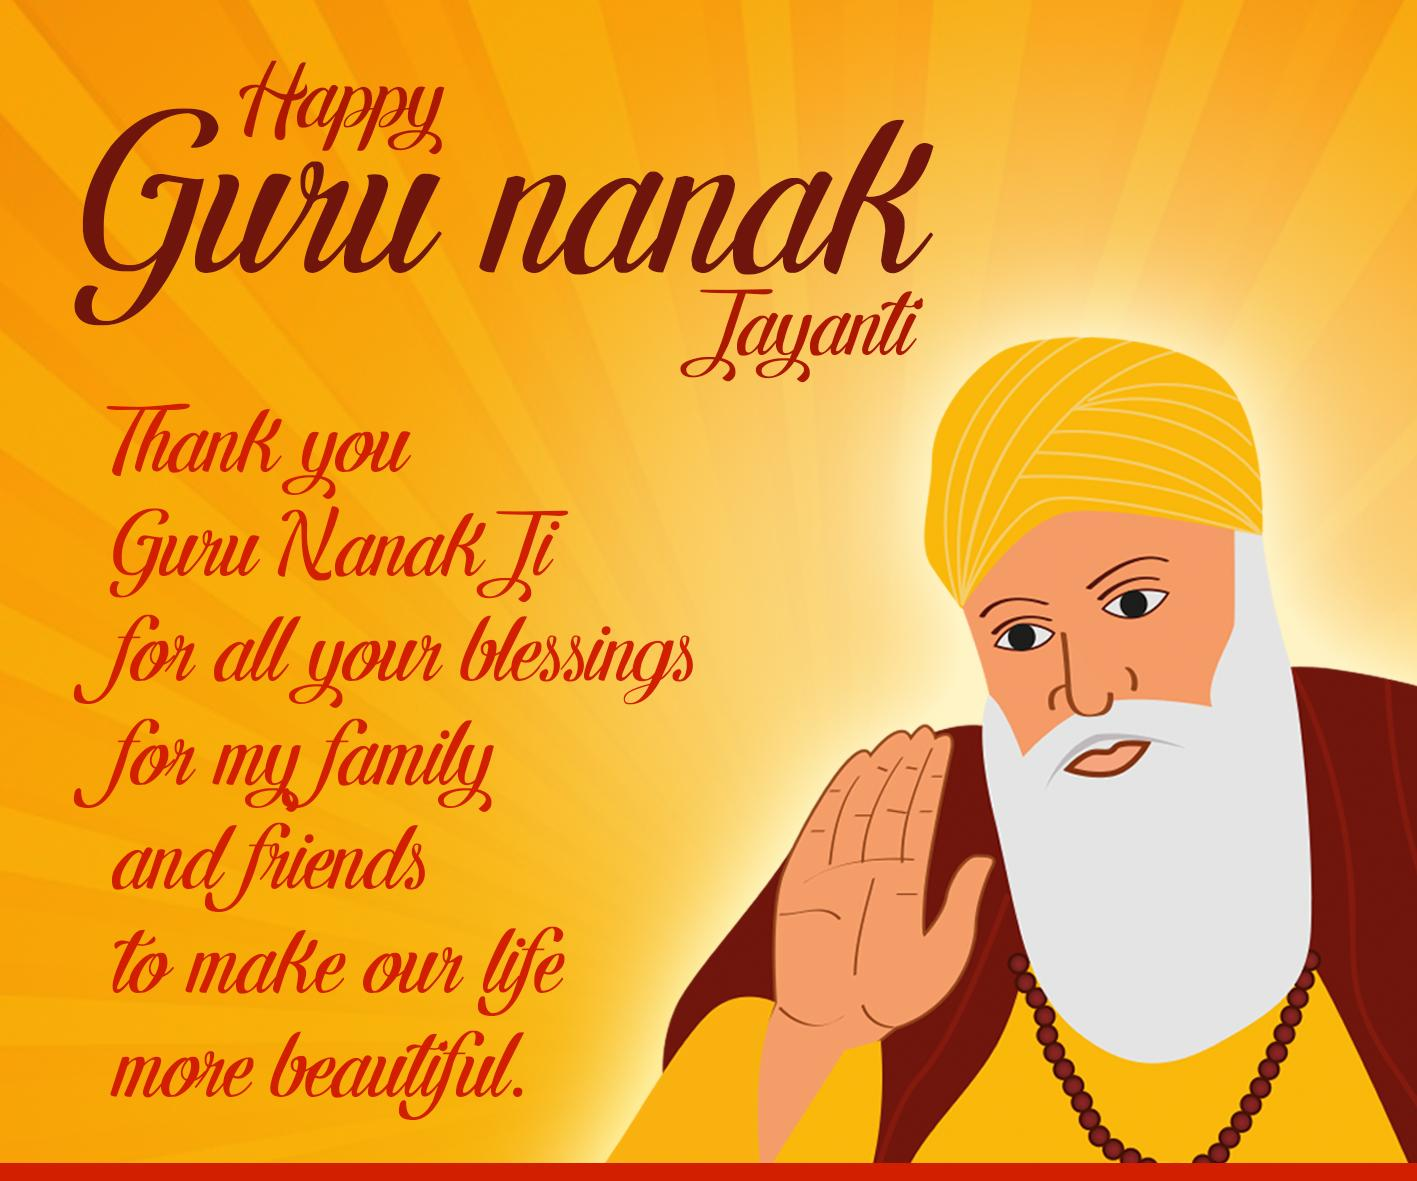 Happy Guru Nanak Jayanti 2019 – Quotes, Messages, Greetings, Images ...